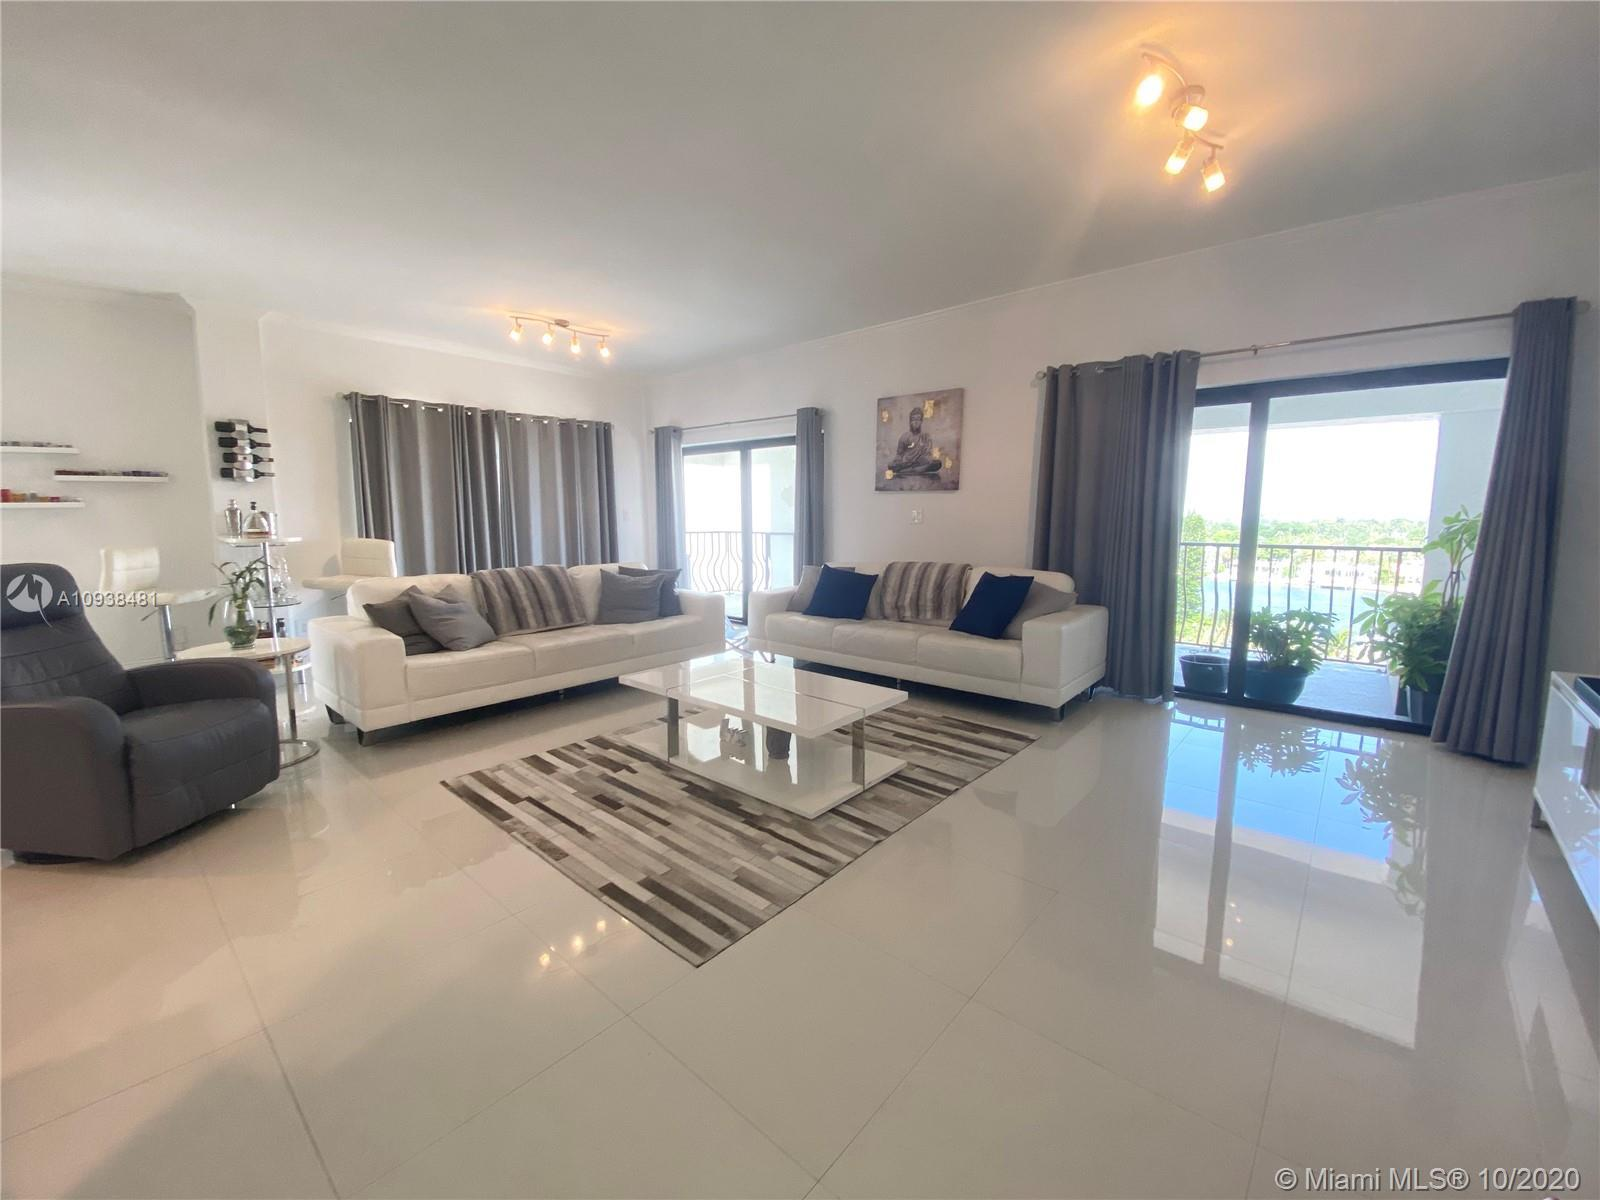 Penthouse with wrap around balcony in boutique ocean front building on Collins Avenue. Located on Mi